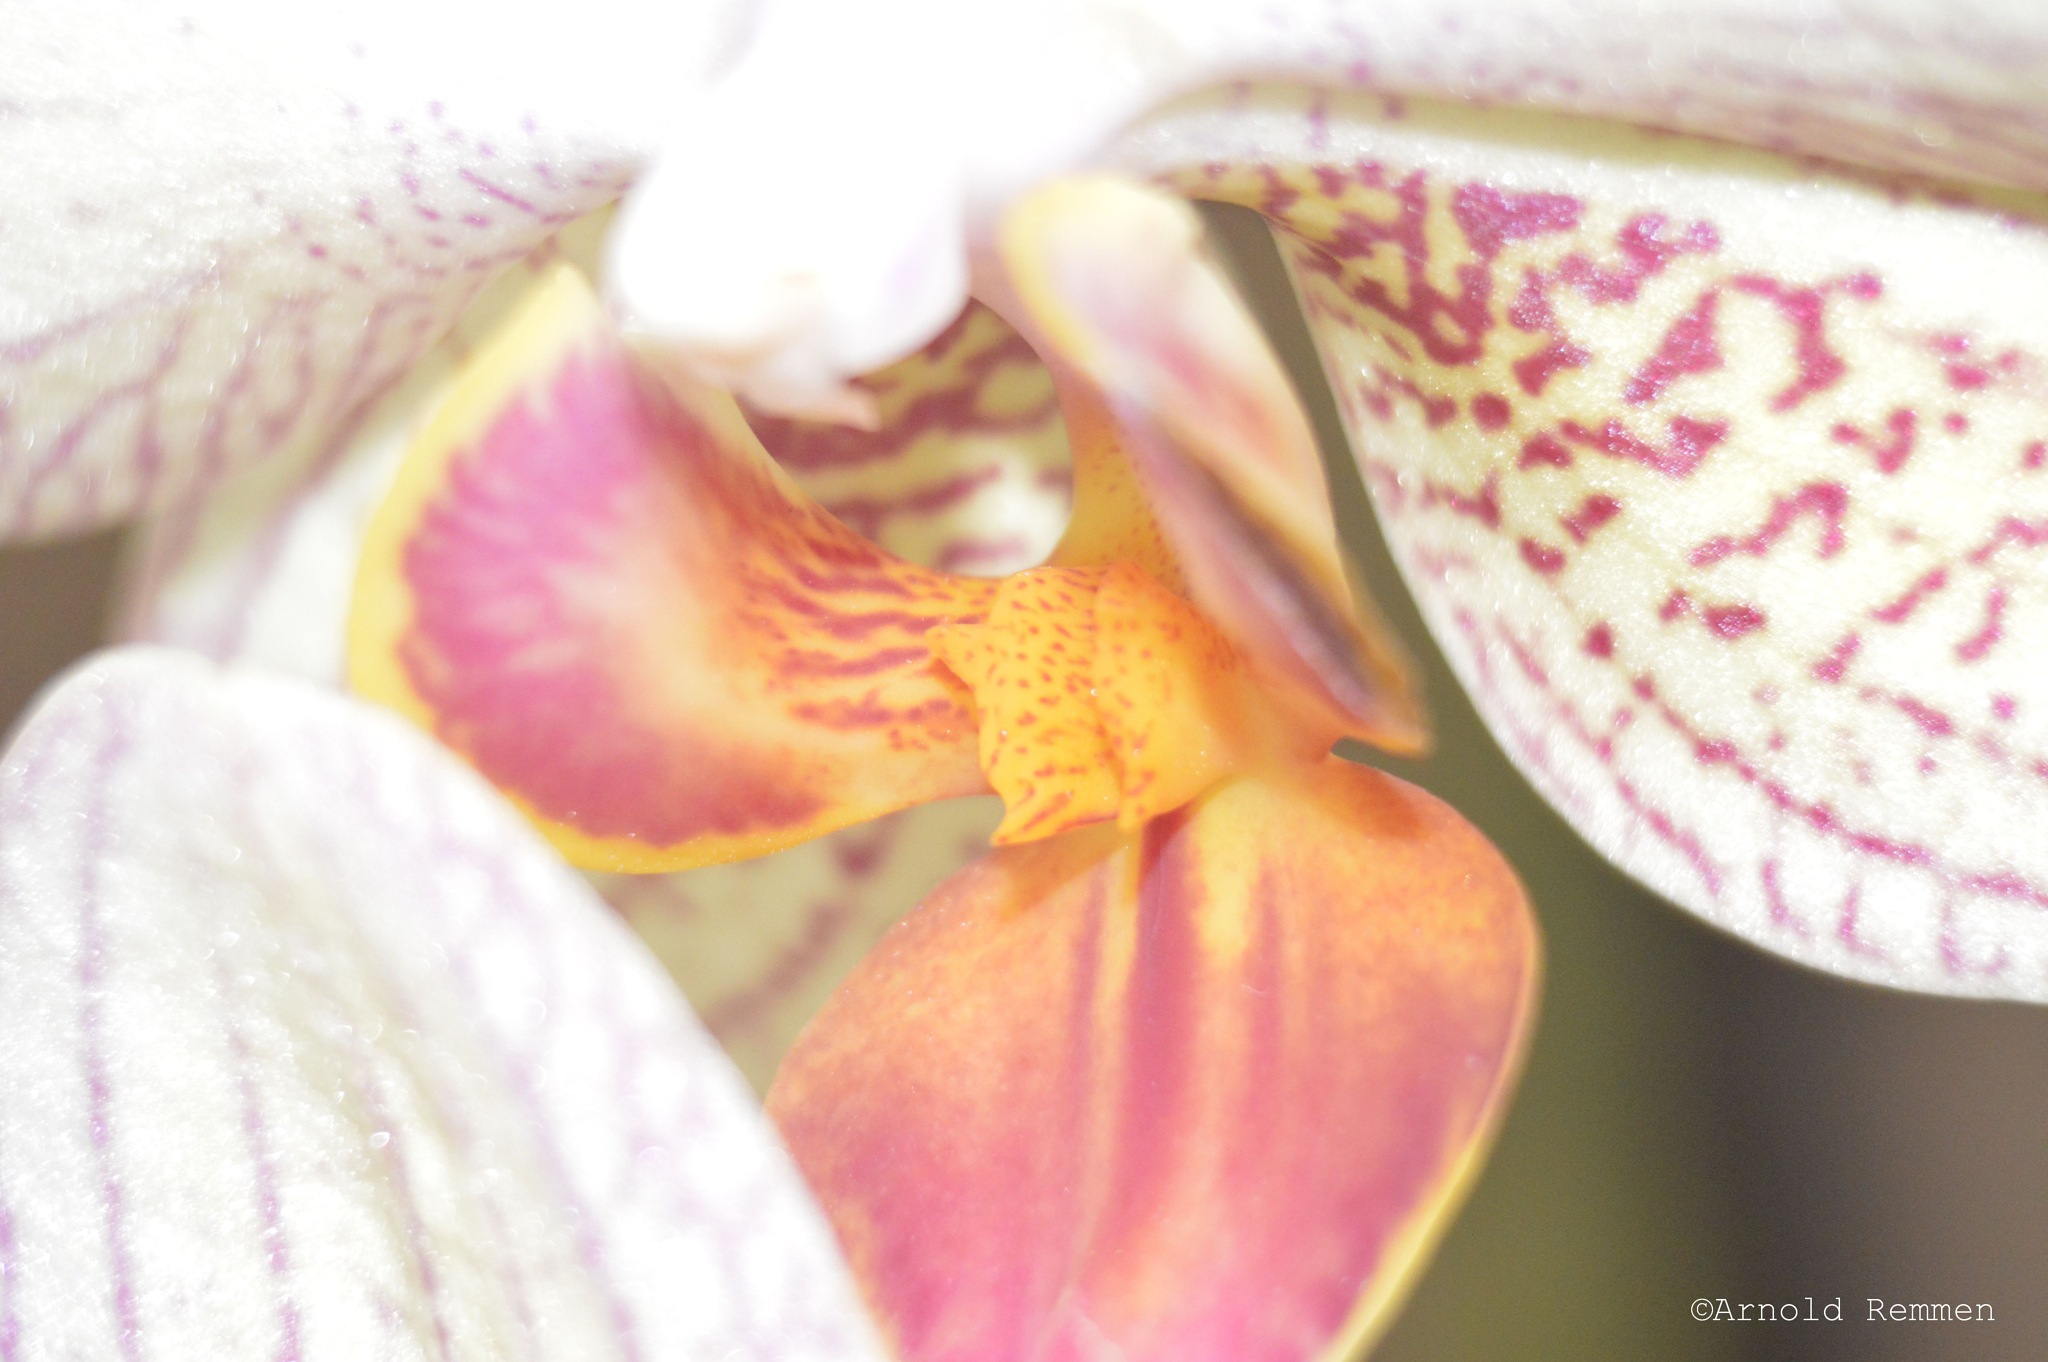 inside the orchid by Arnold Remmen